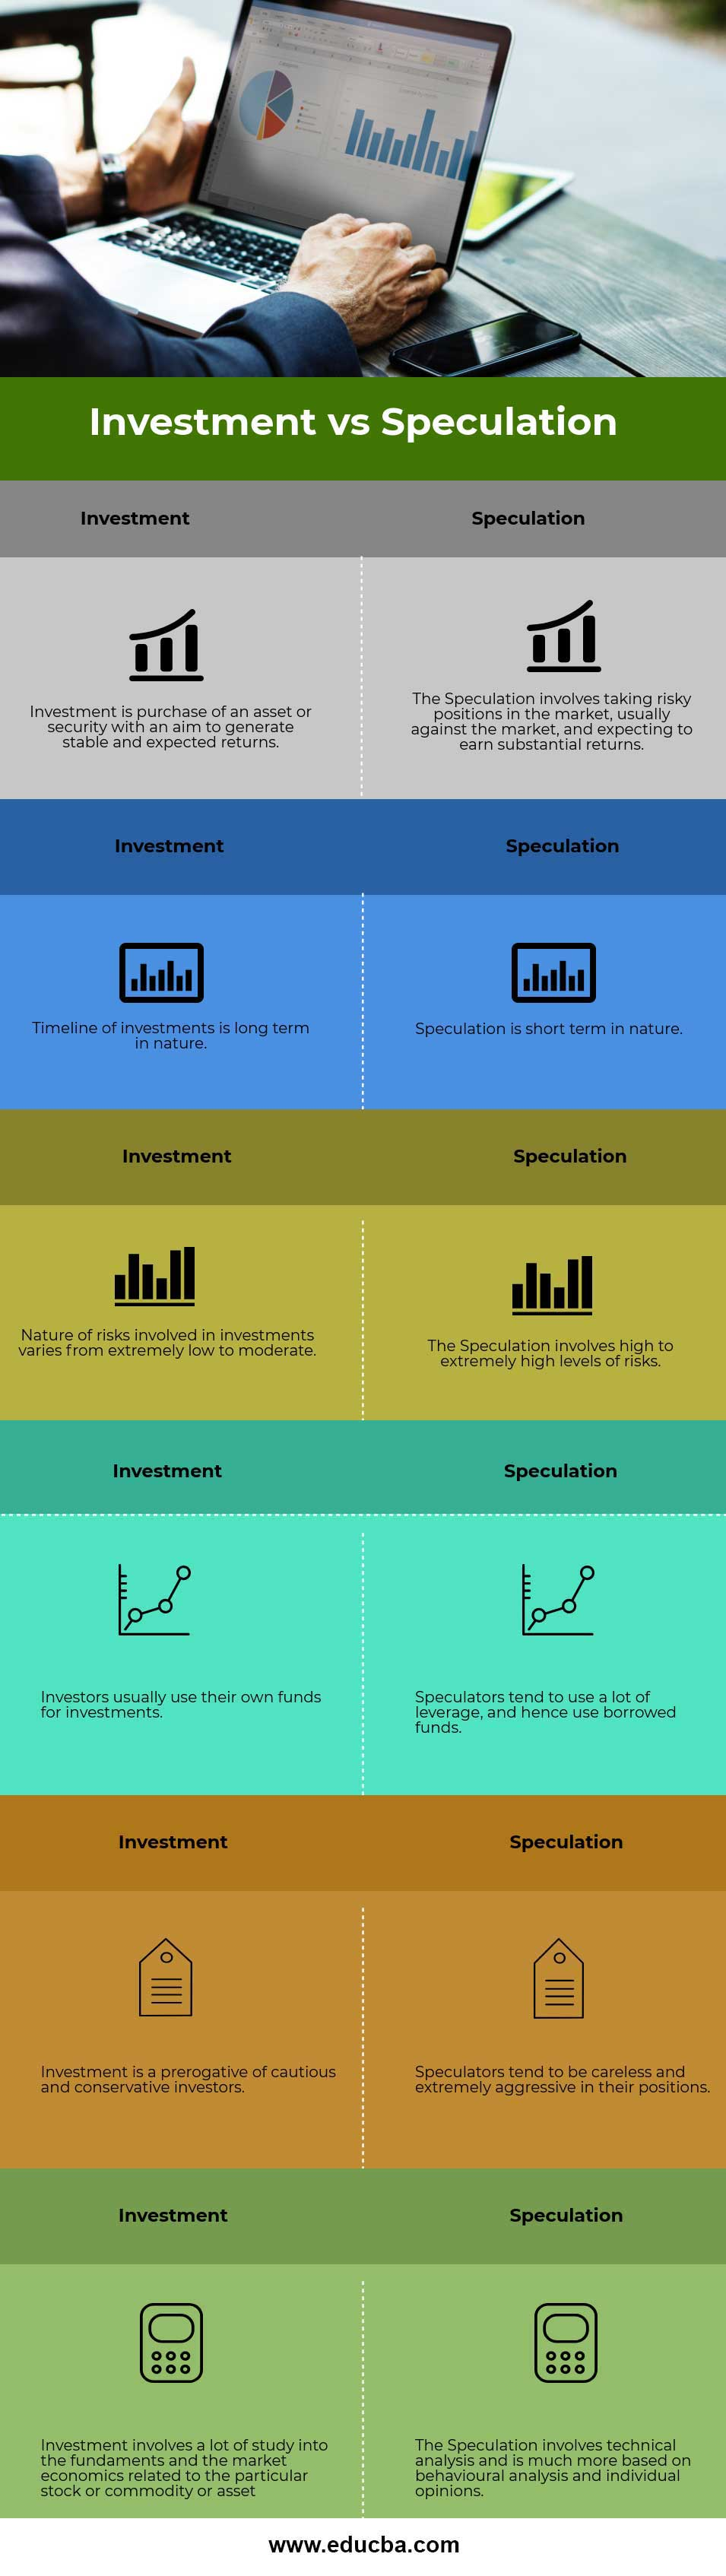 Investment vs Speculation info